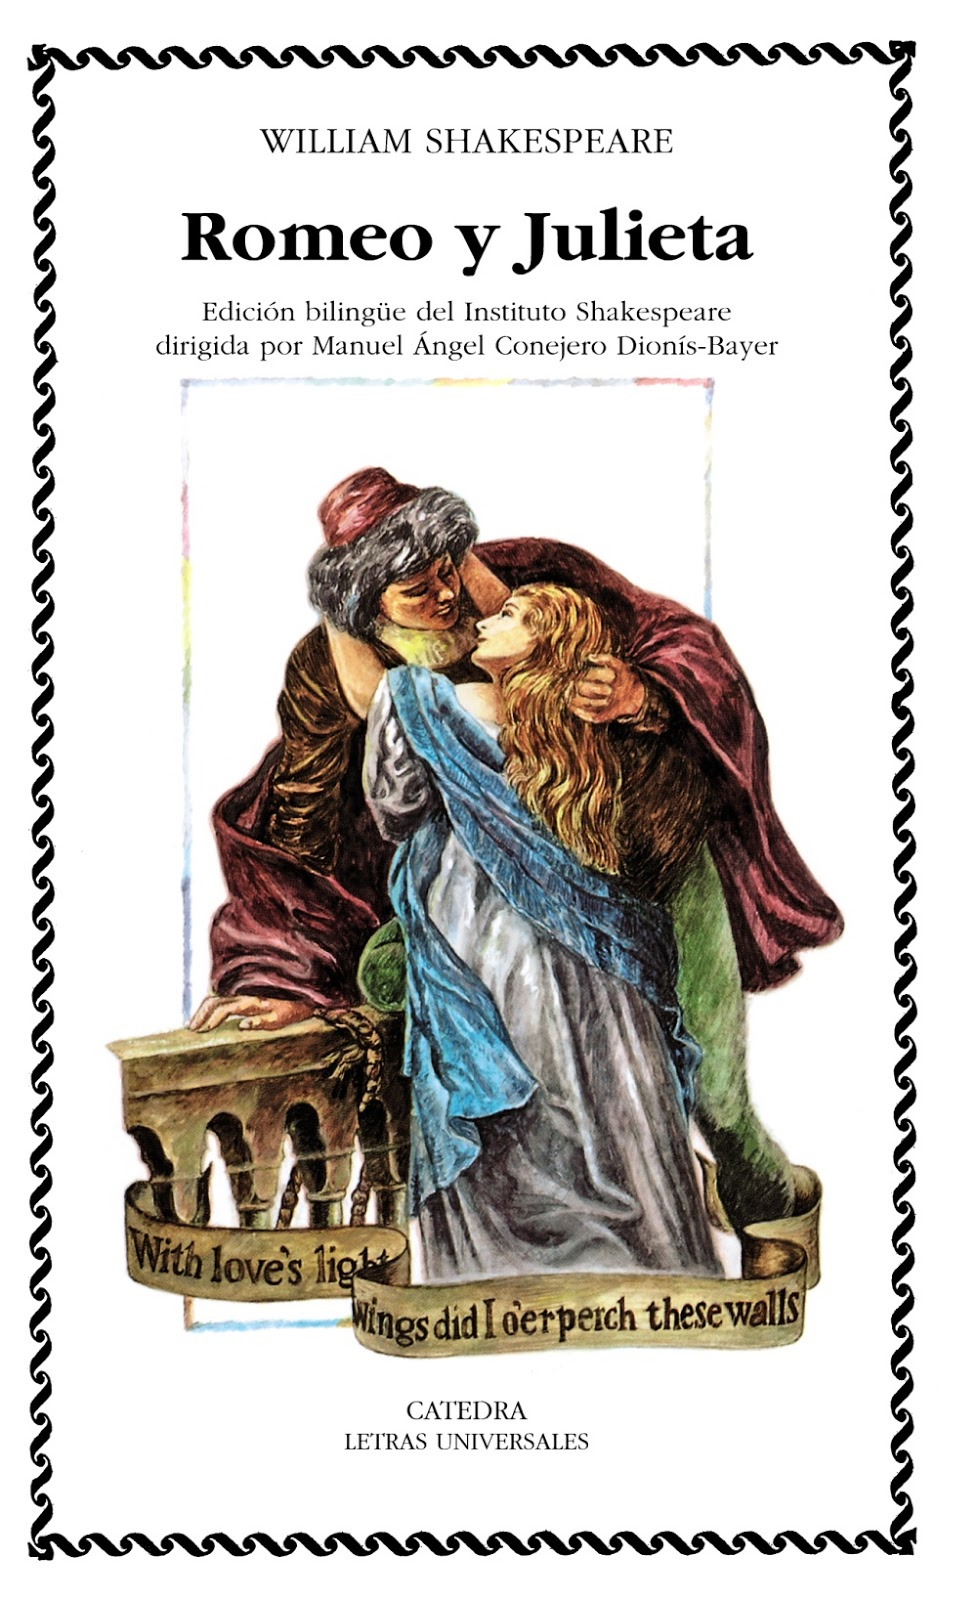 the relevance of william shakespeares romeo and William shakespeare's romeo + juliet 732,280 likes 543 talking about this see more of william shakespeare's romeo + juliet on facebook.